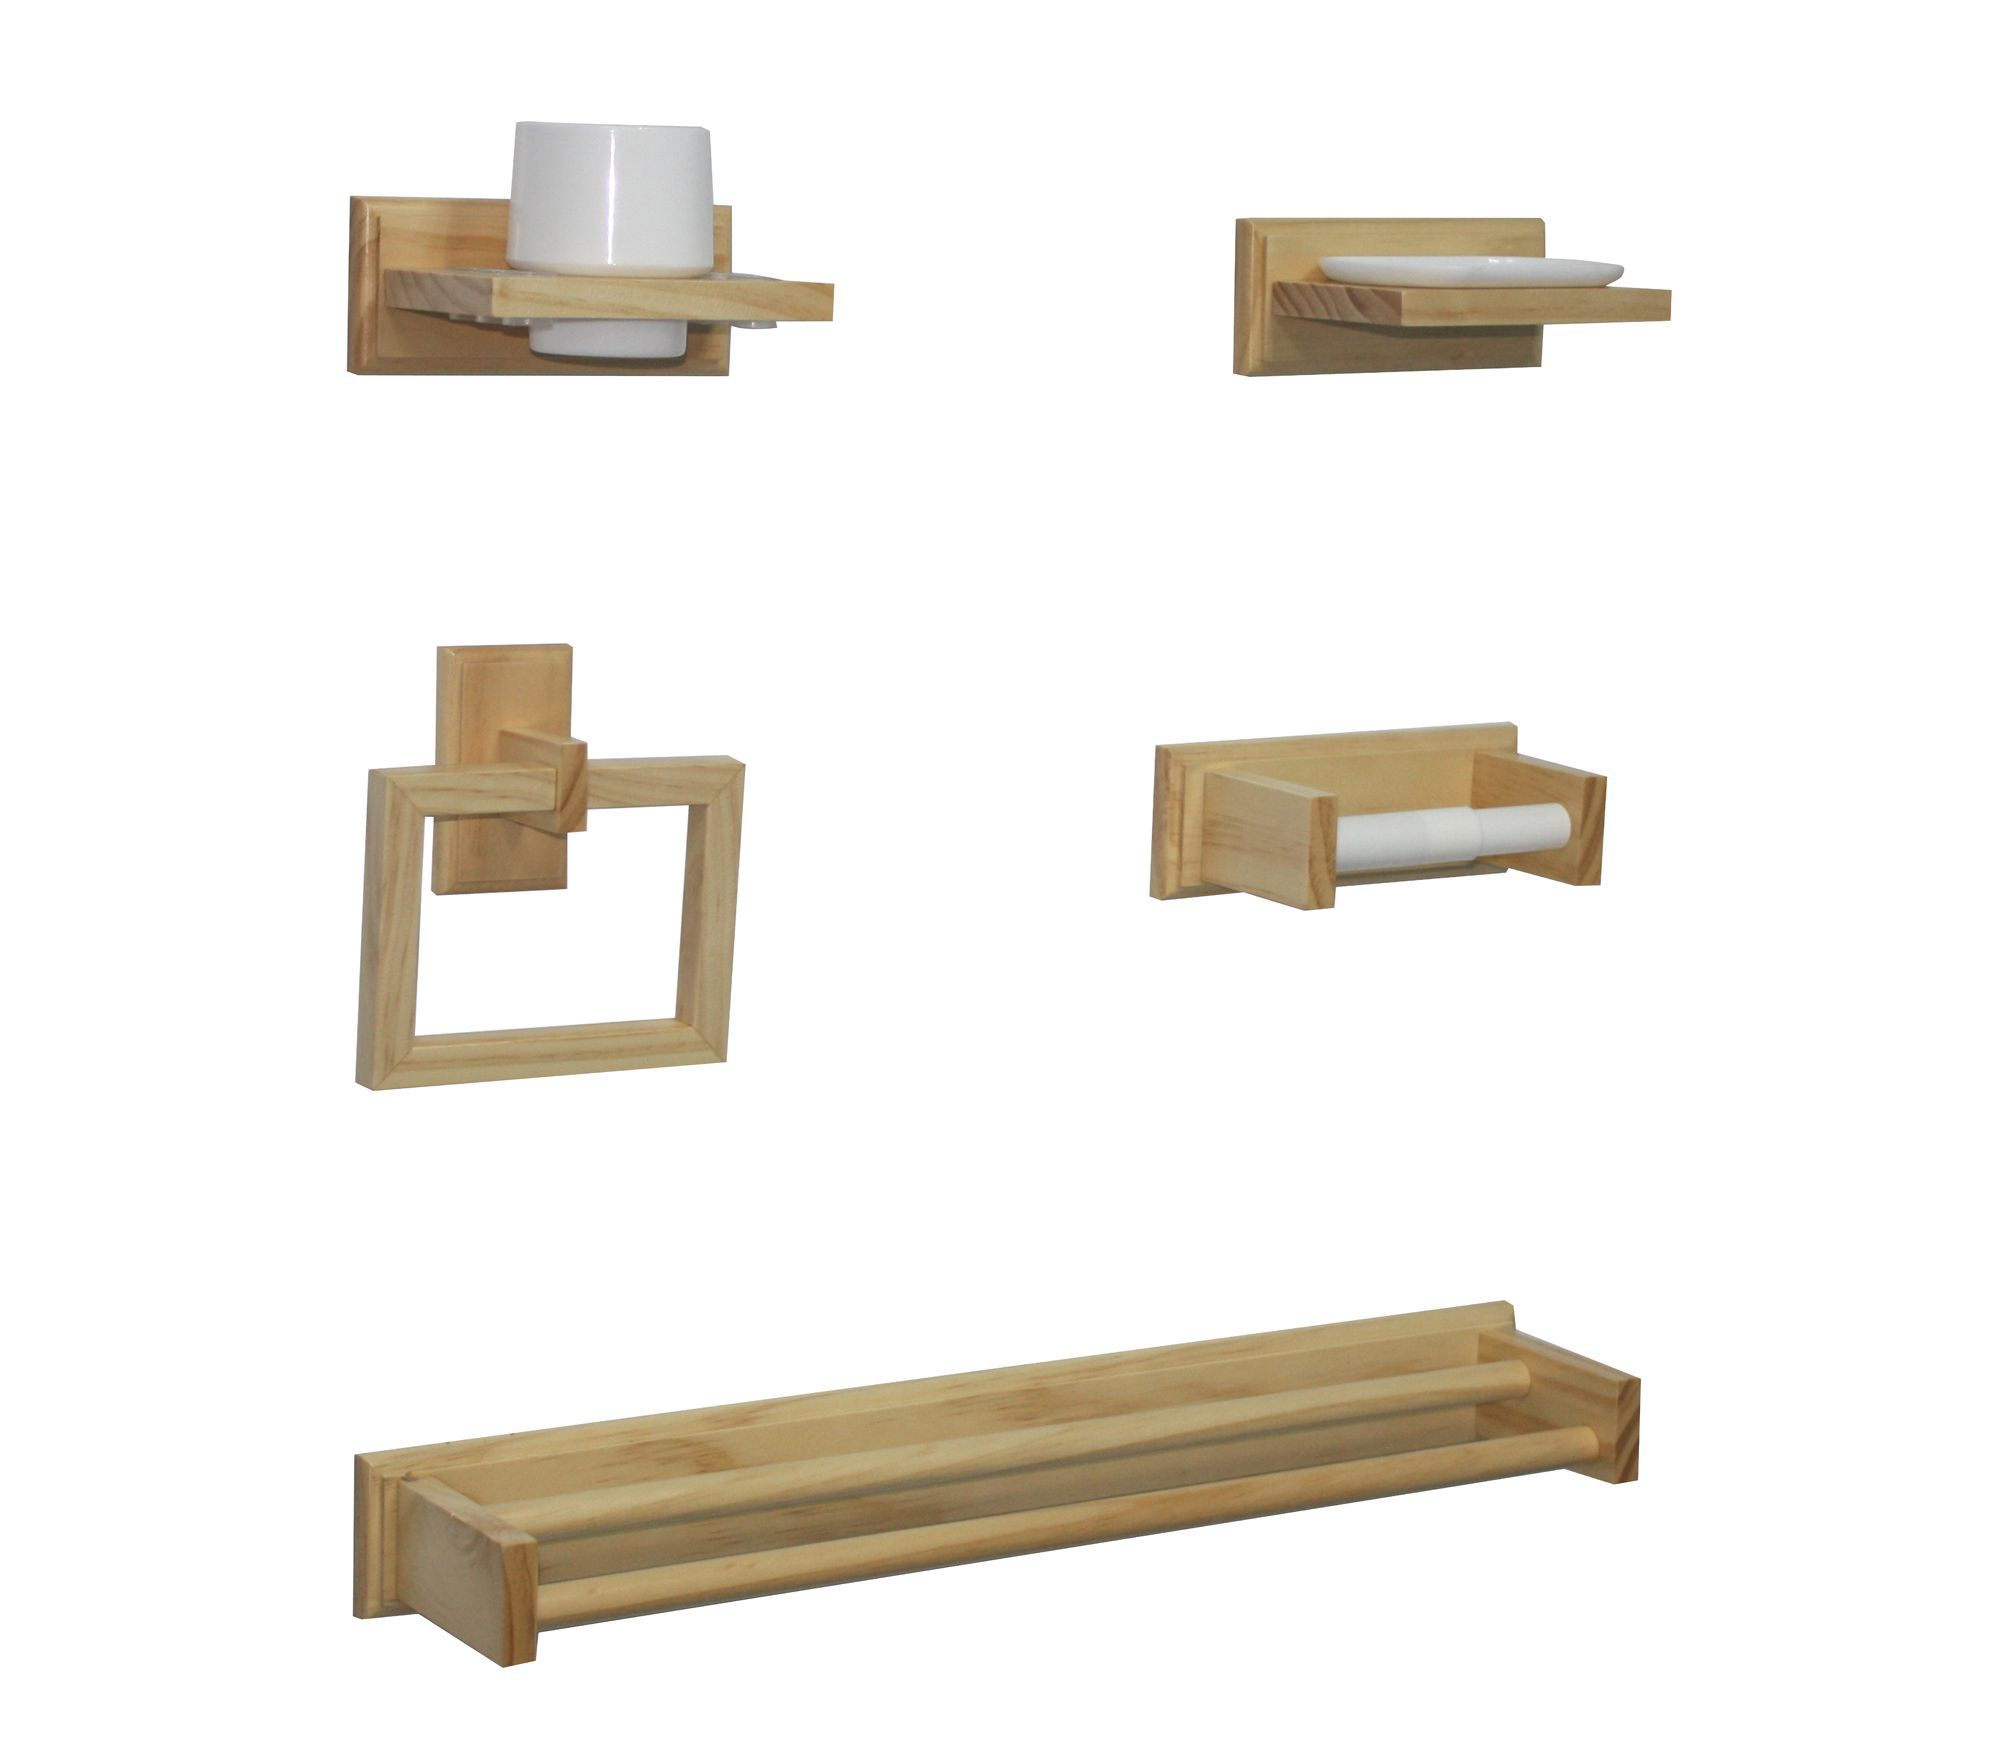 Cooke lewis boundary solid pine bathroom accessory set for B q bathroom accessories